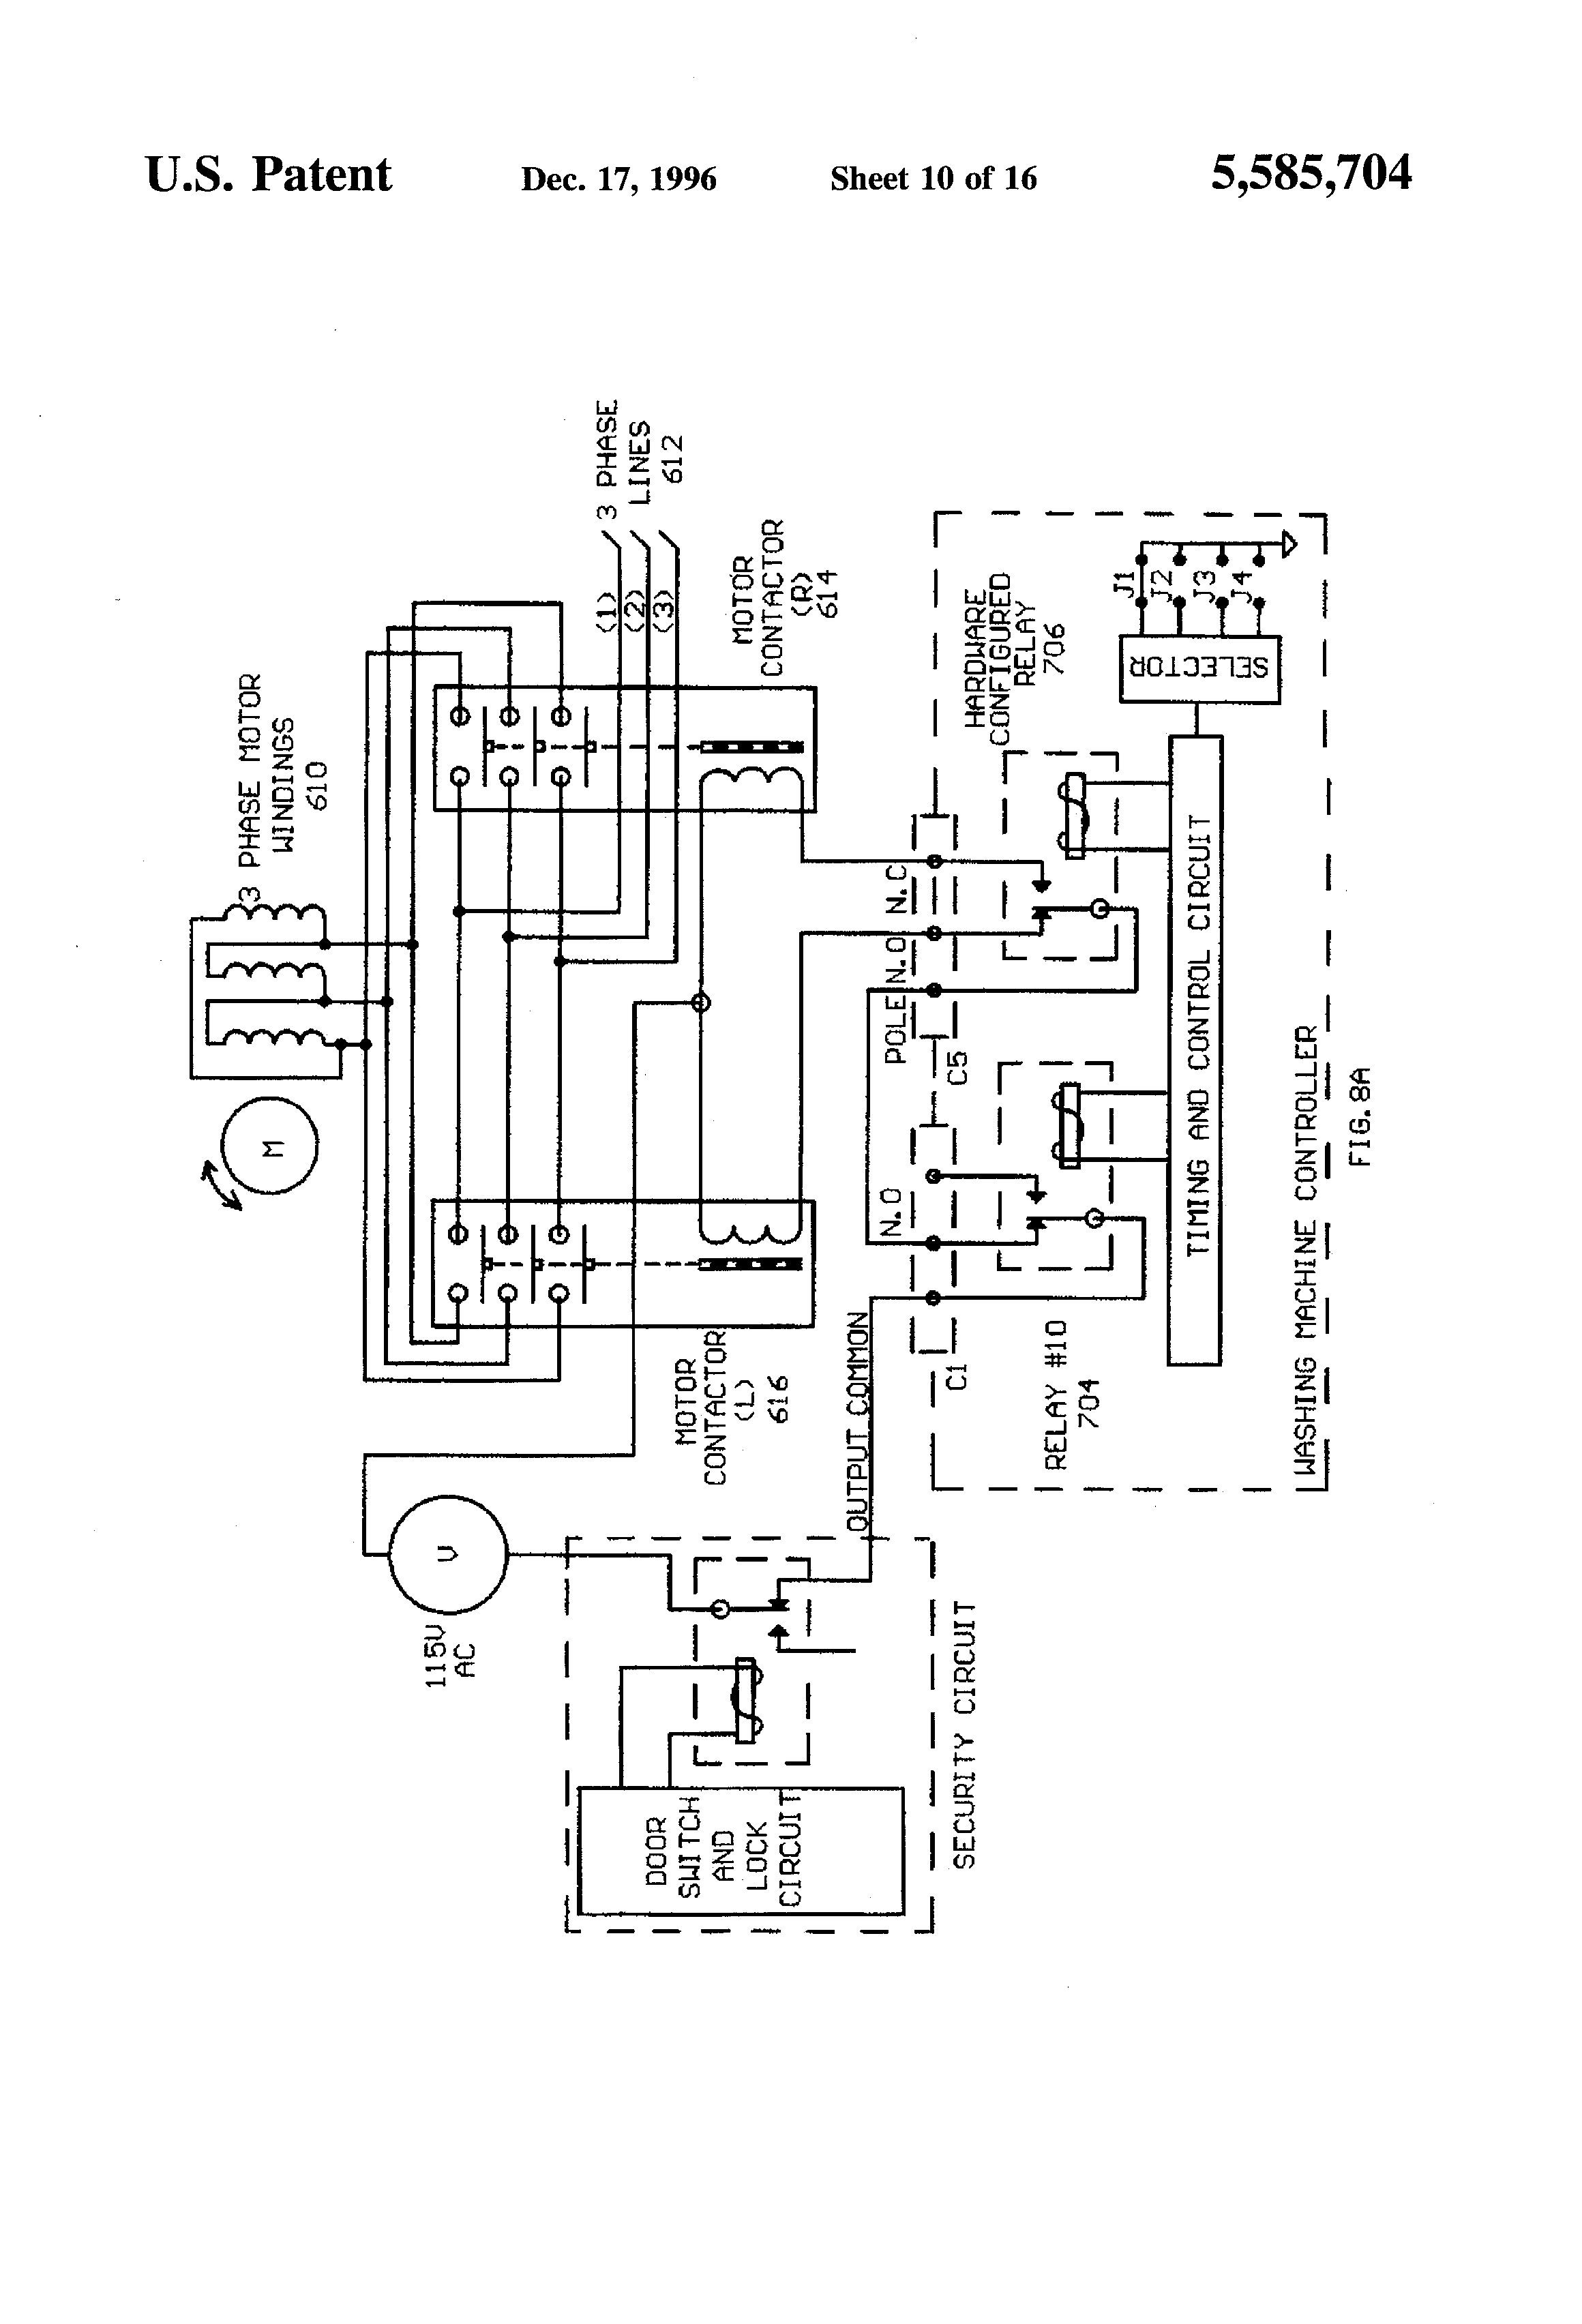 small resolution of wiring diagram of washing machine motor wiring diagram washing how to read washing machine wiring diagram